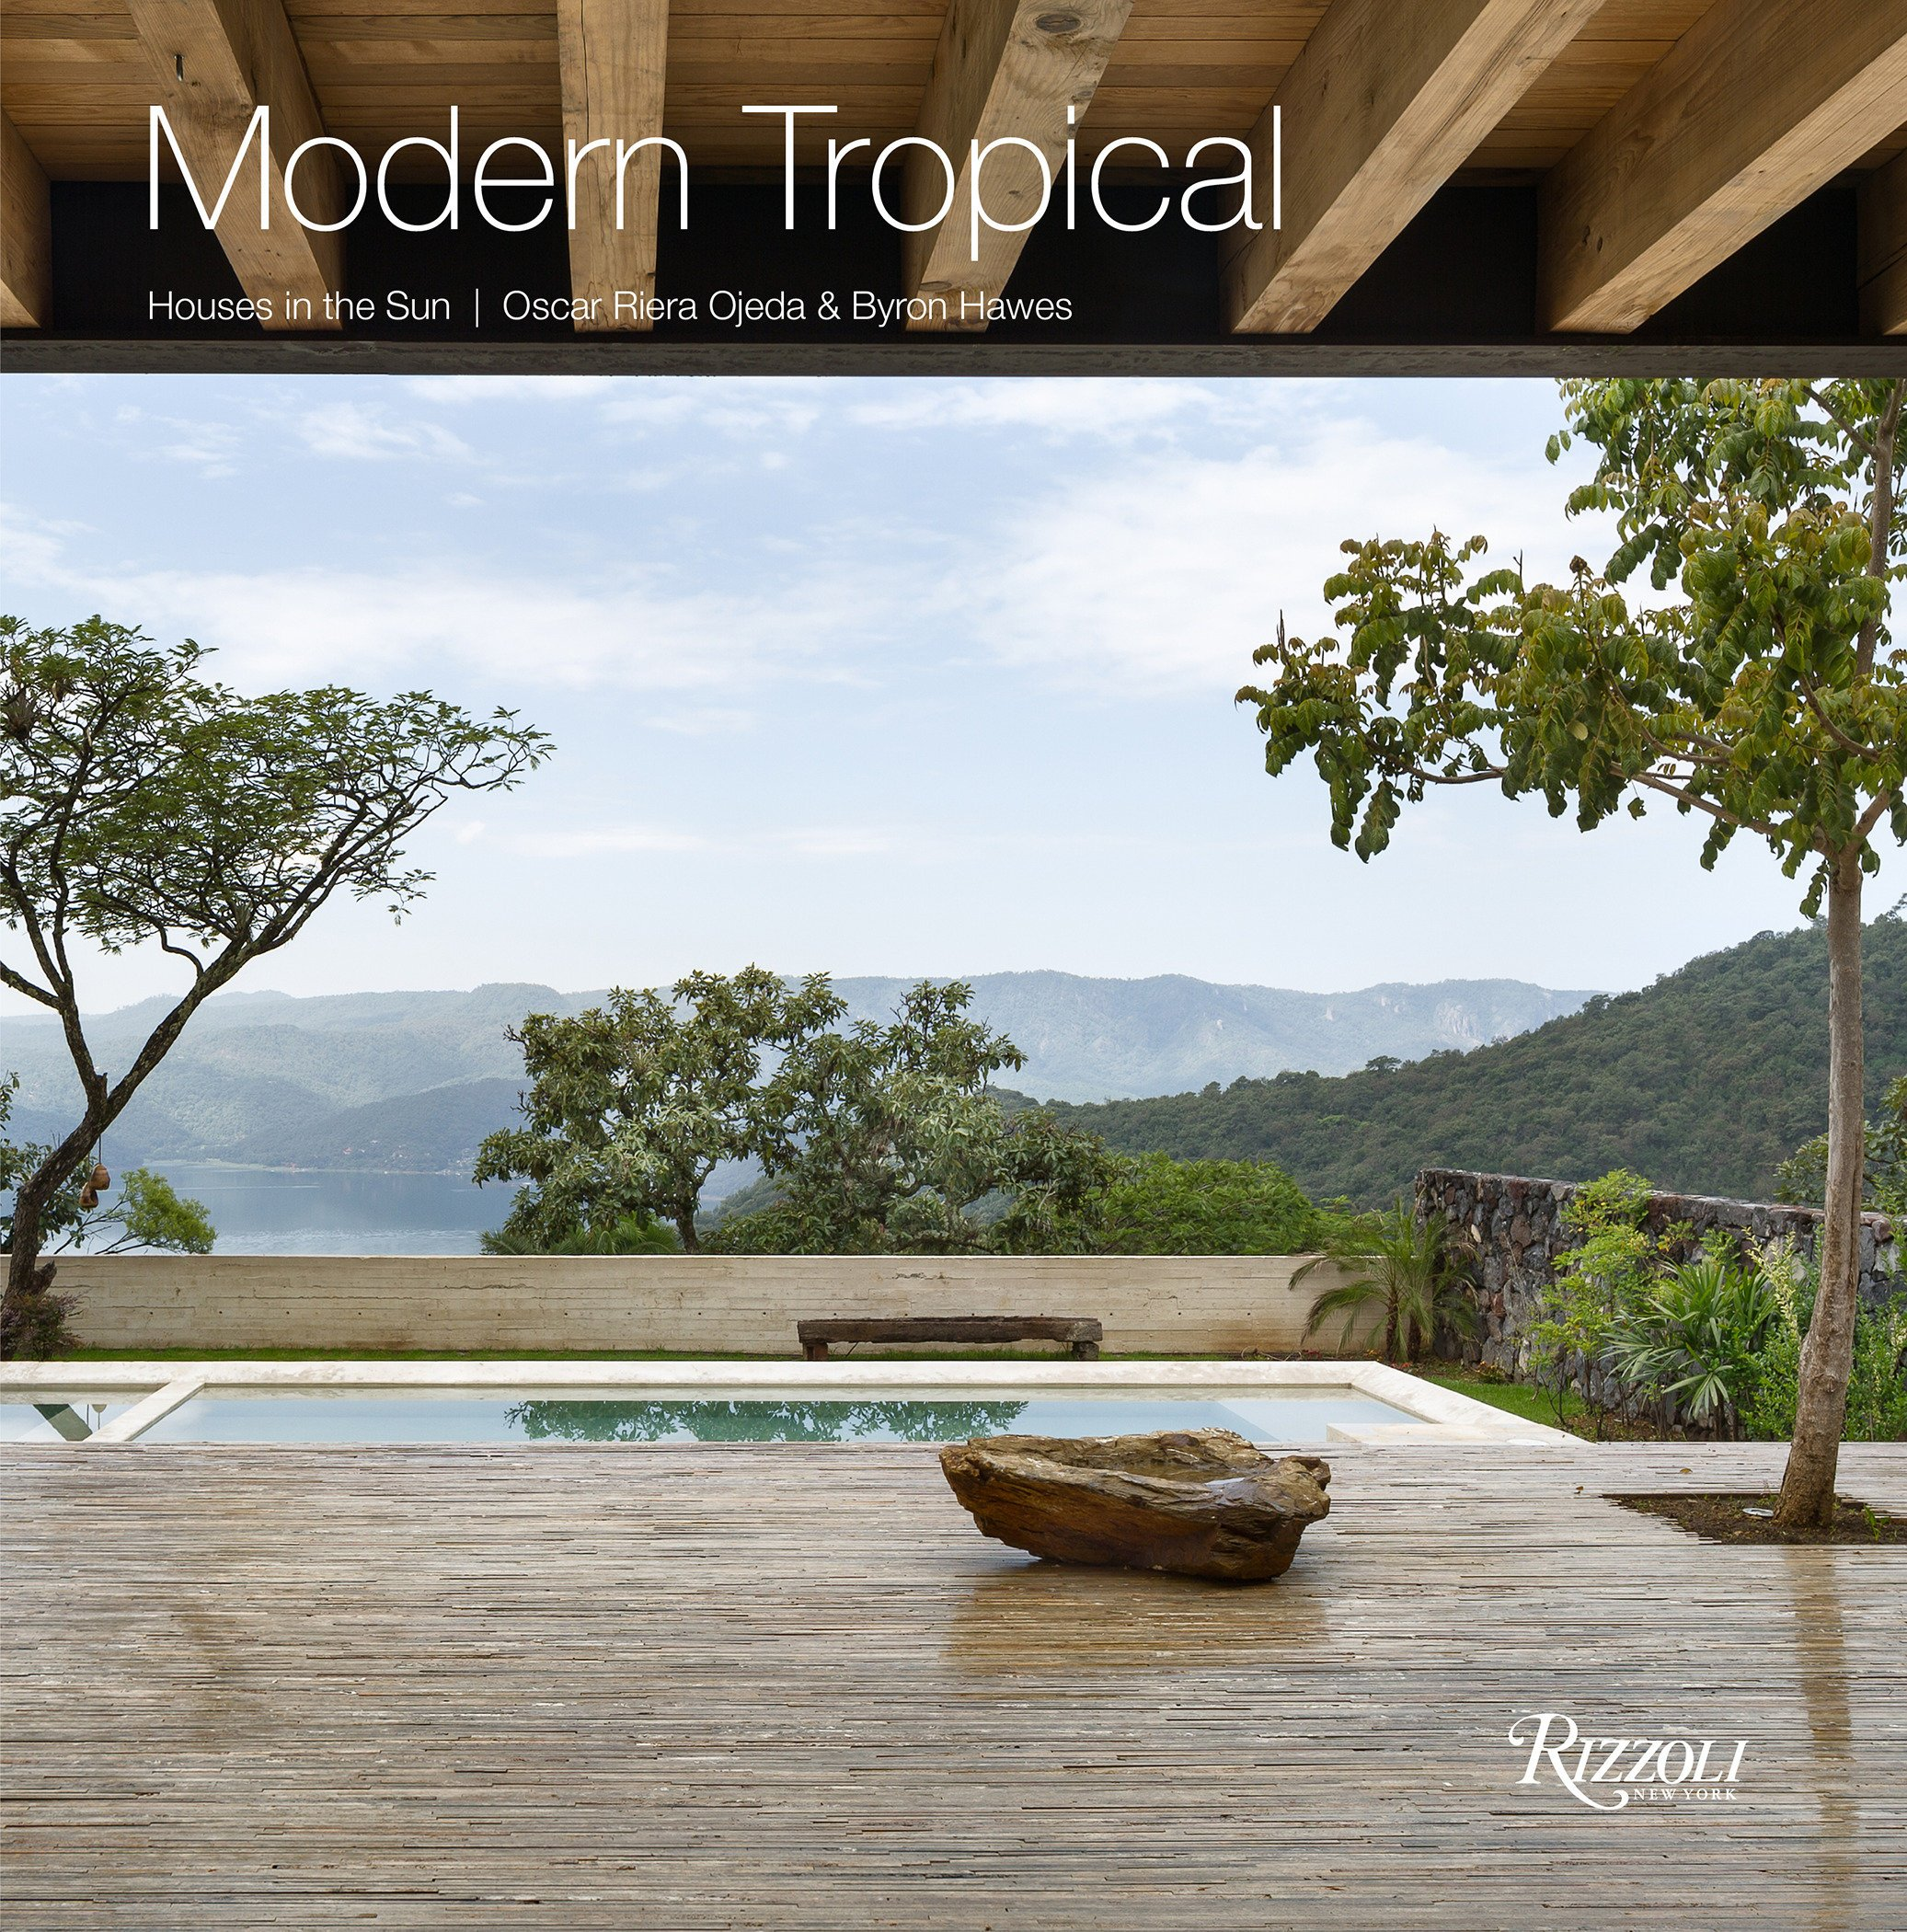 Modern Tropical: Houses in the Sun by Rizzoli